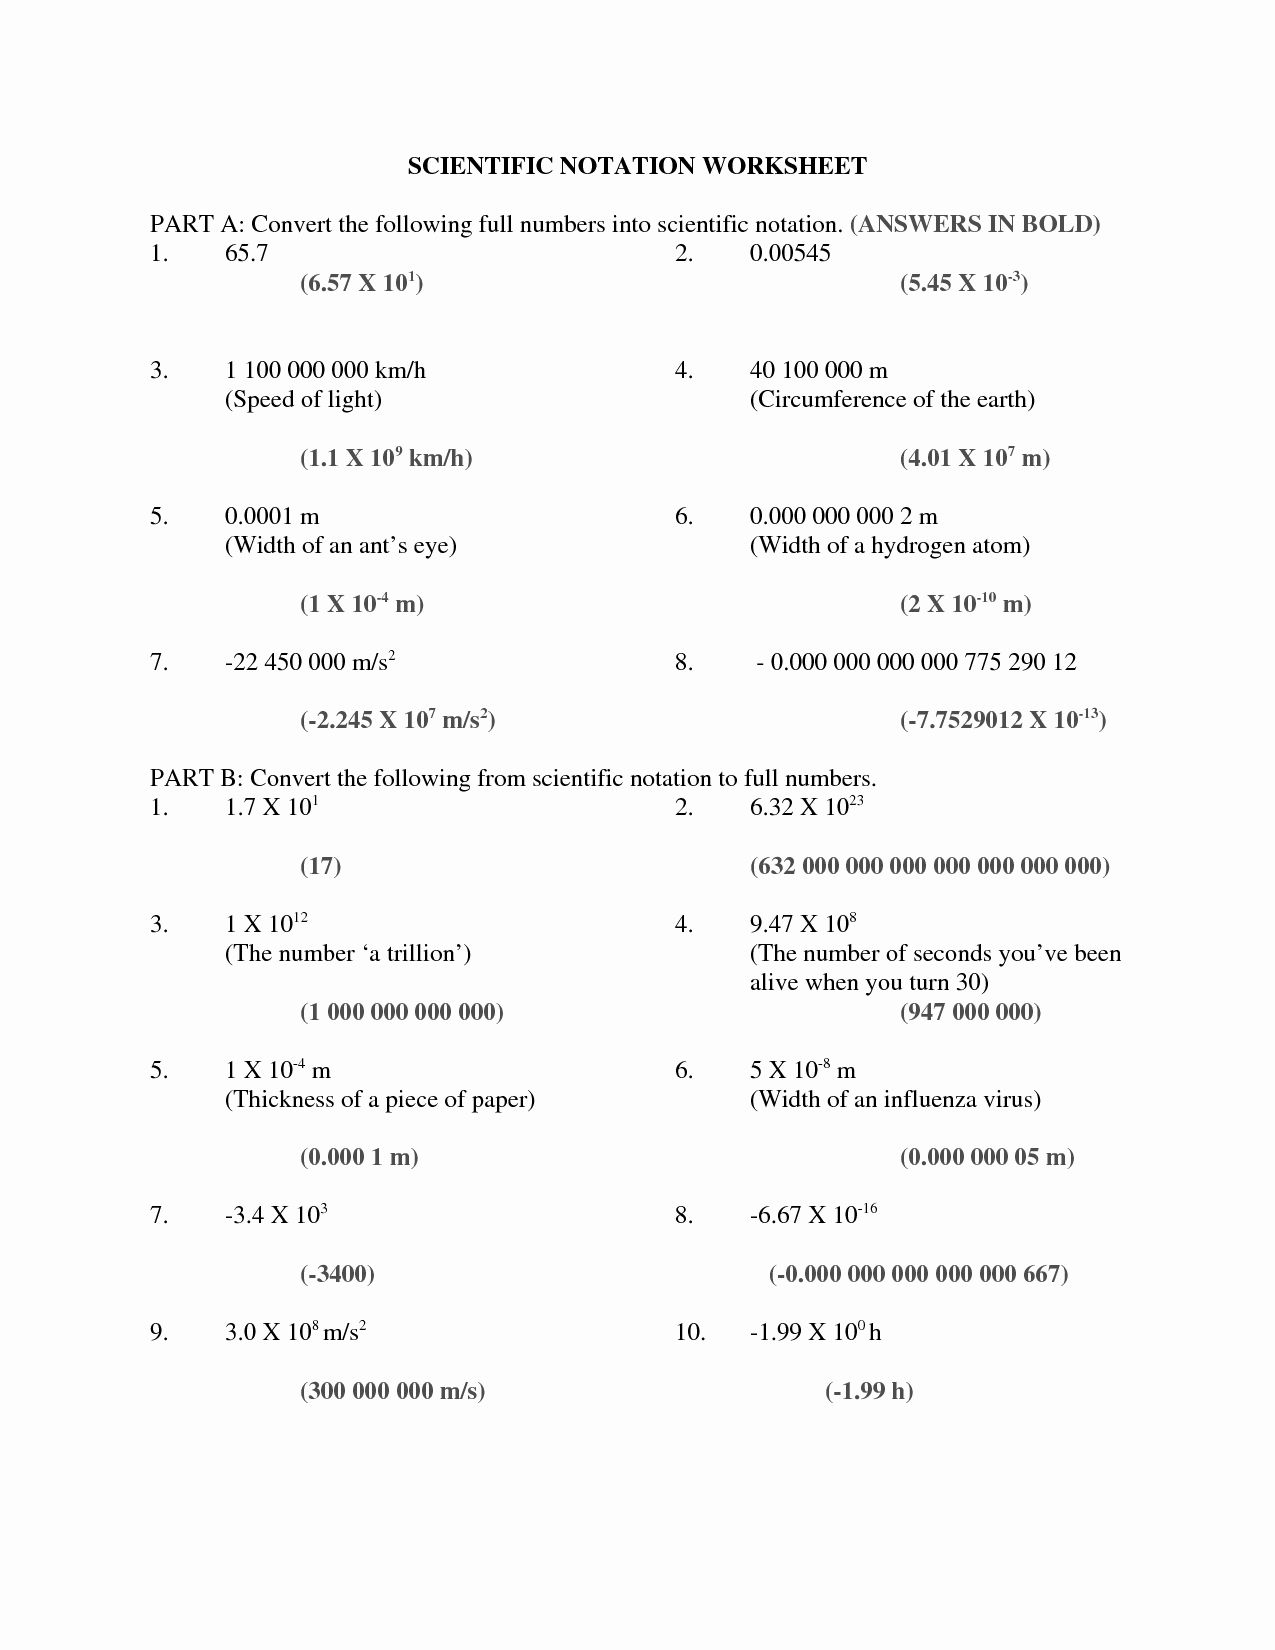 Scientific Notation Worksheet With Answers Inspirational 7